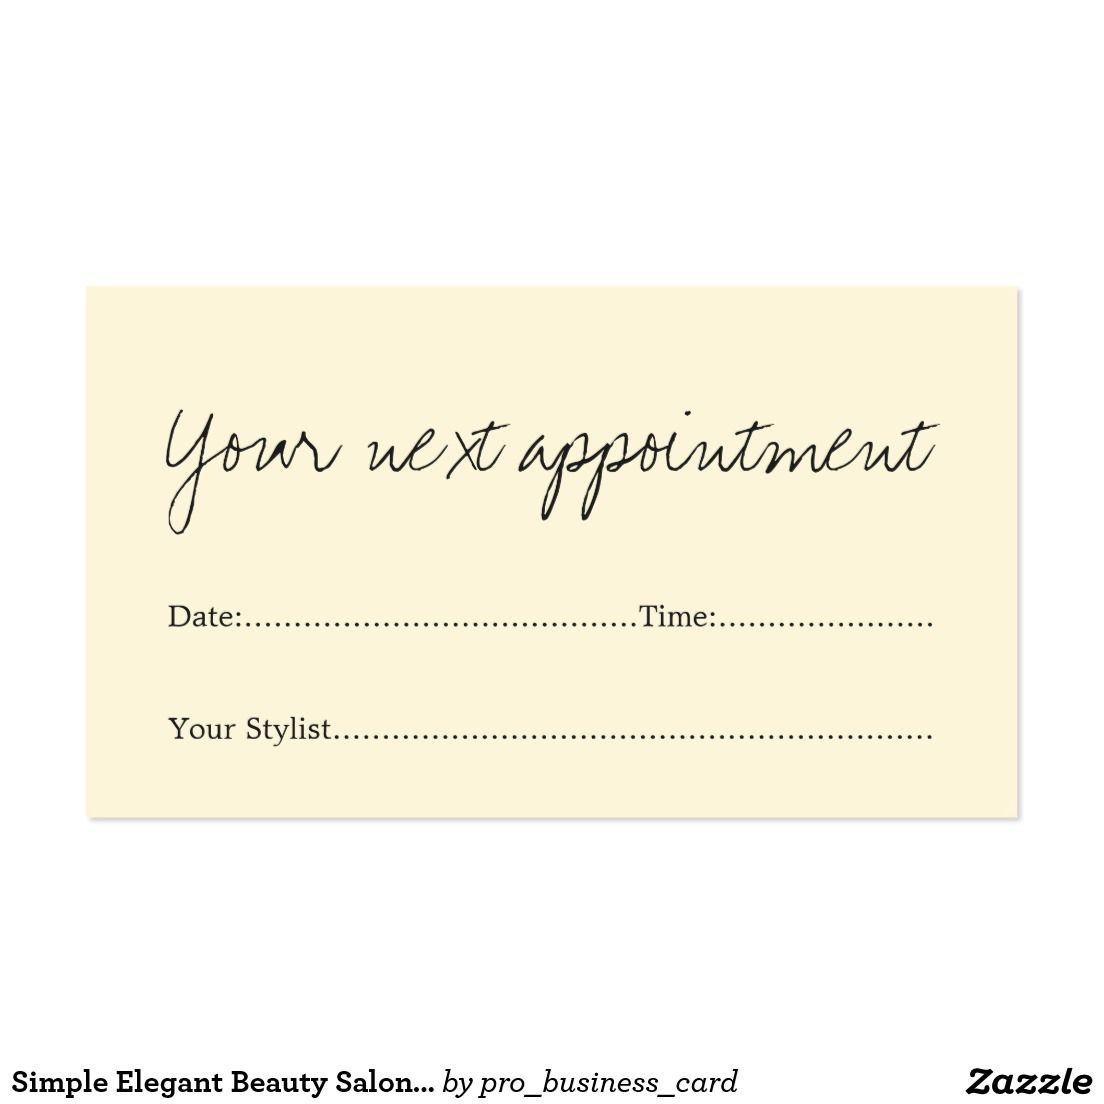 Simple Elegant Beauty Salon Appointment Card   Appointment Cards ...